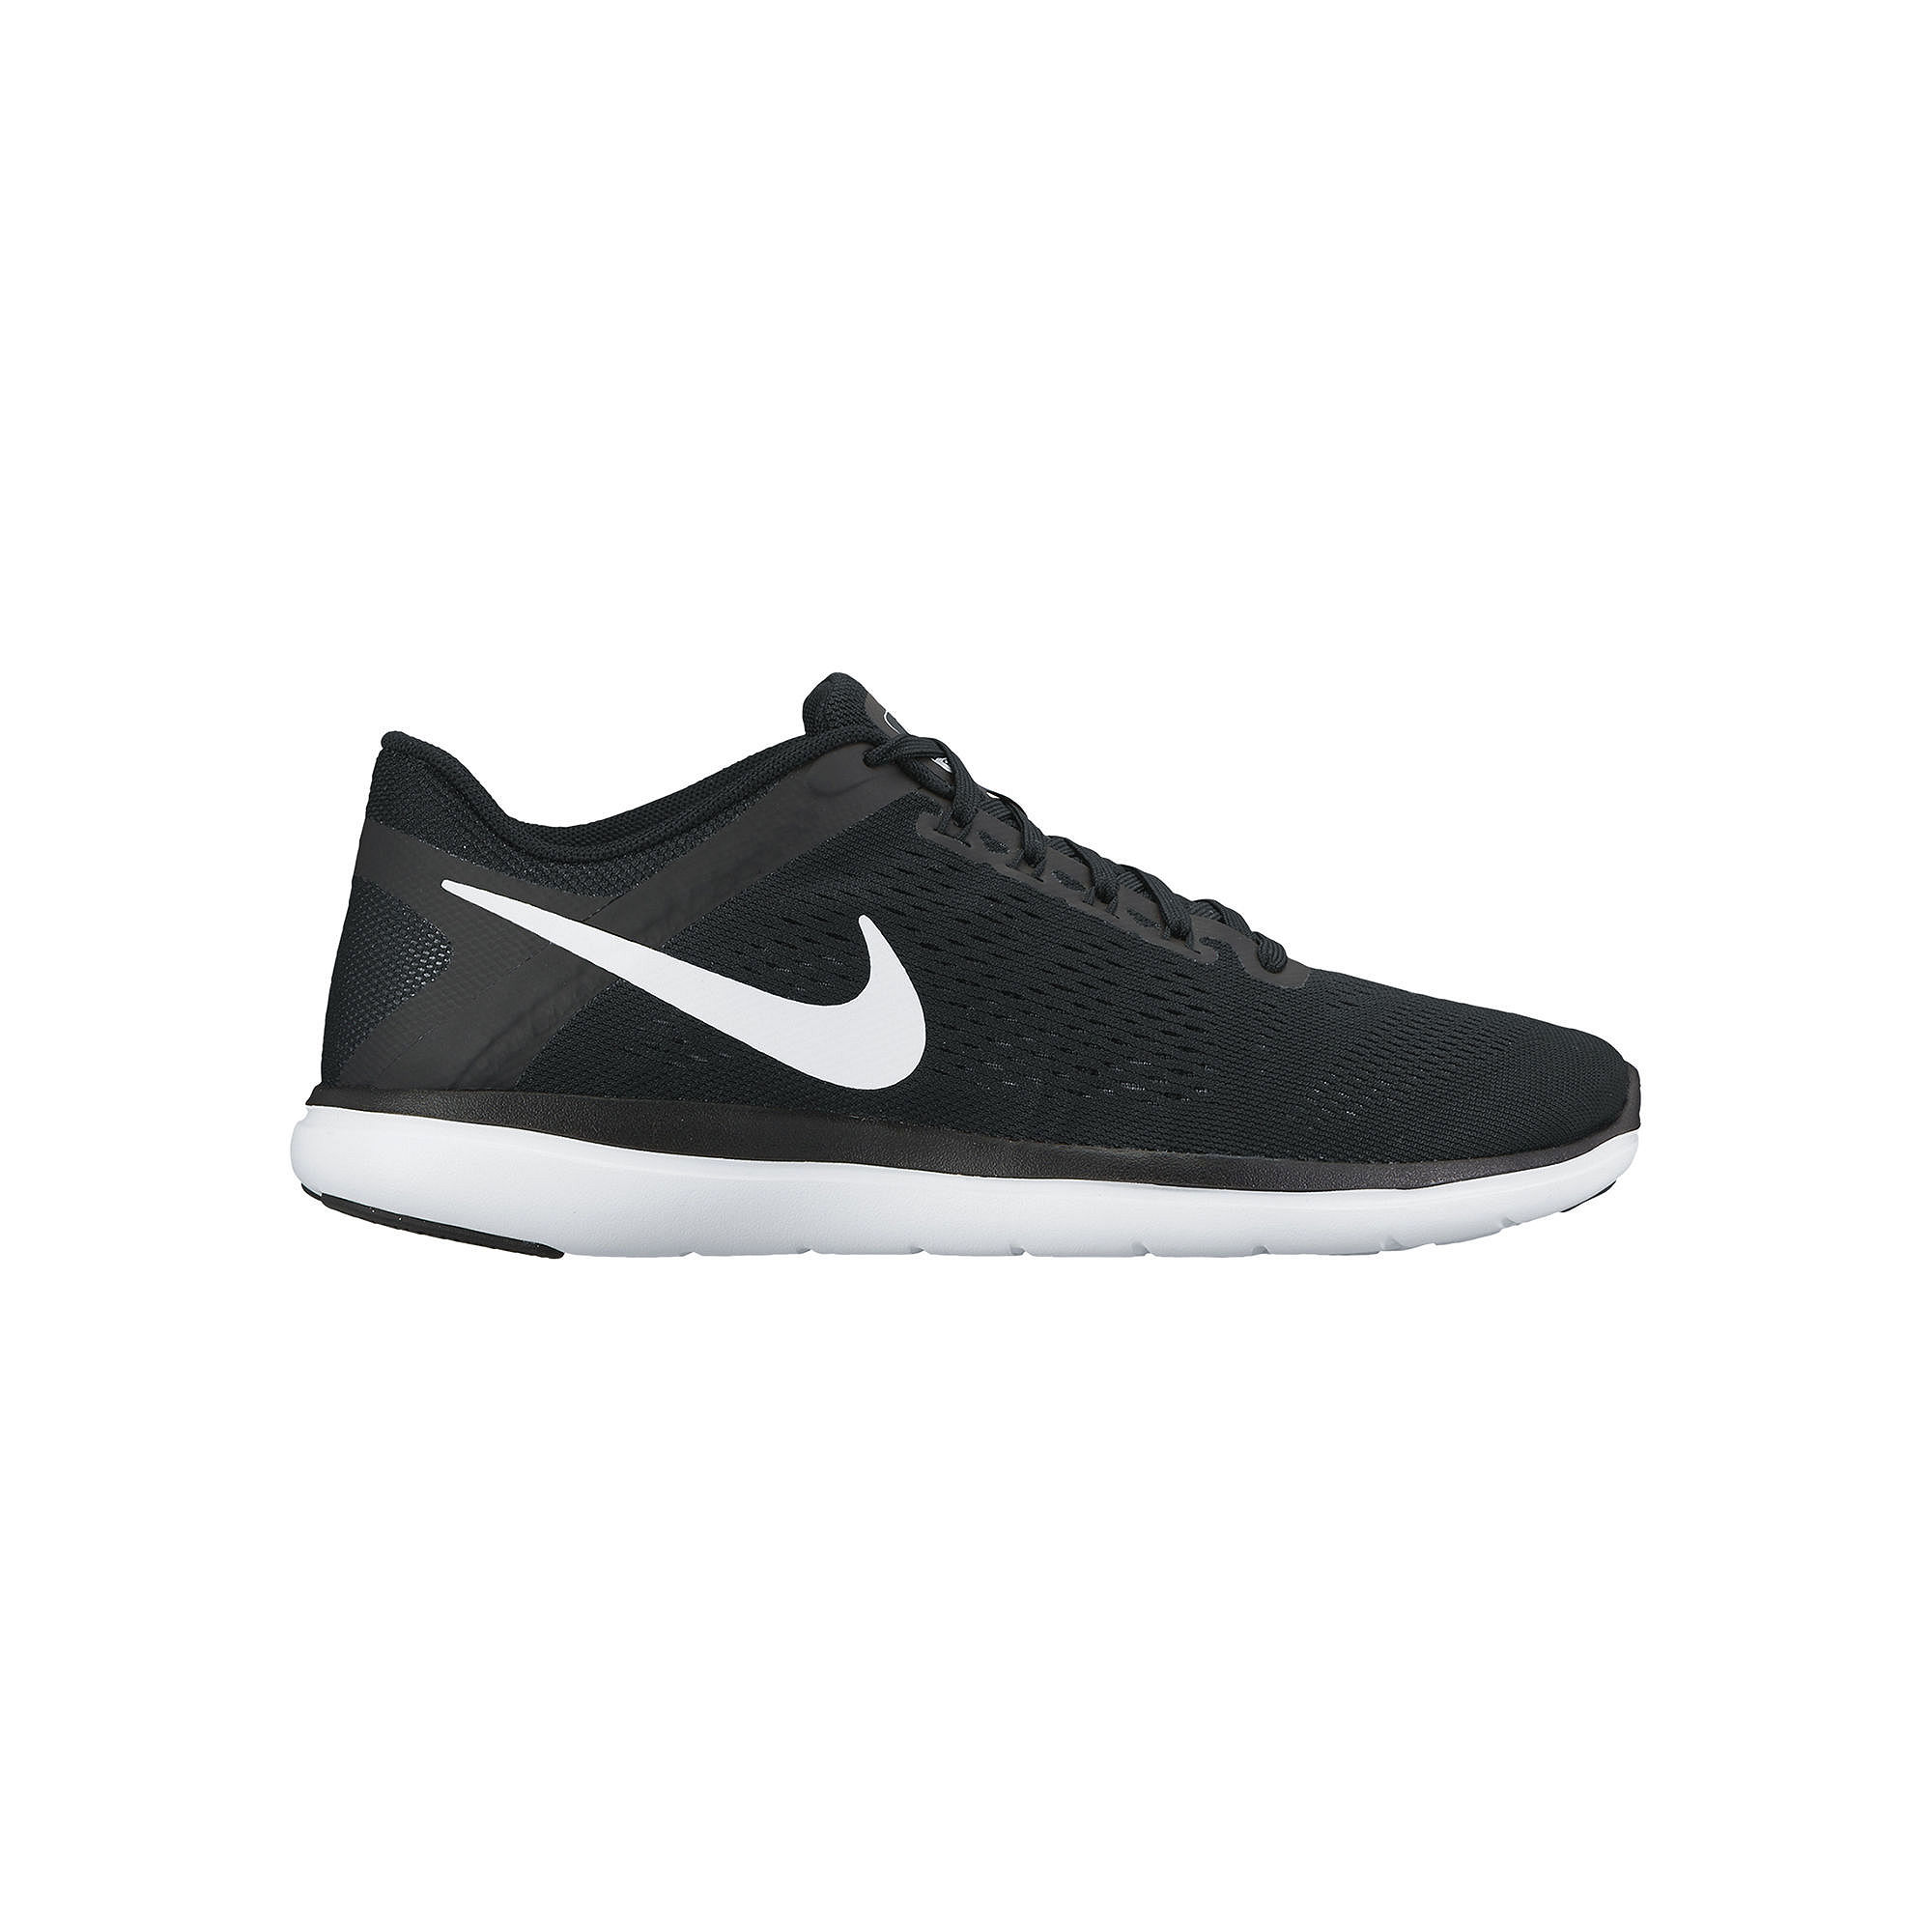 2635795b049d0 UPC 886548822621. ZOOM. UPC 886548822621 has following Product Name  Variations  Nike Women s Flex 2016 Rn Running Sneakers from Finish Line ...